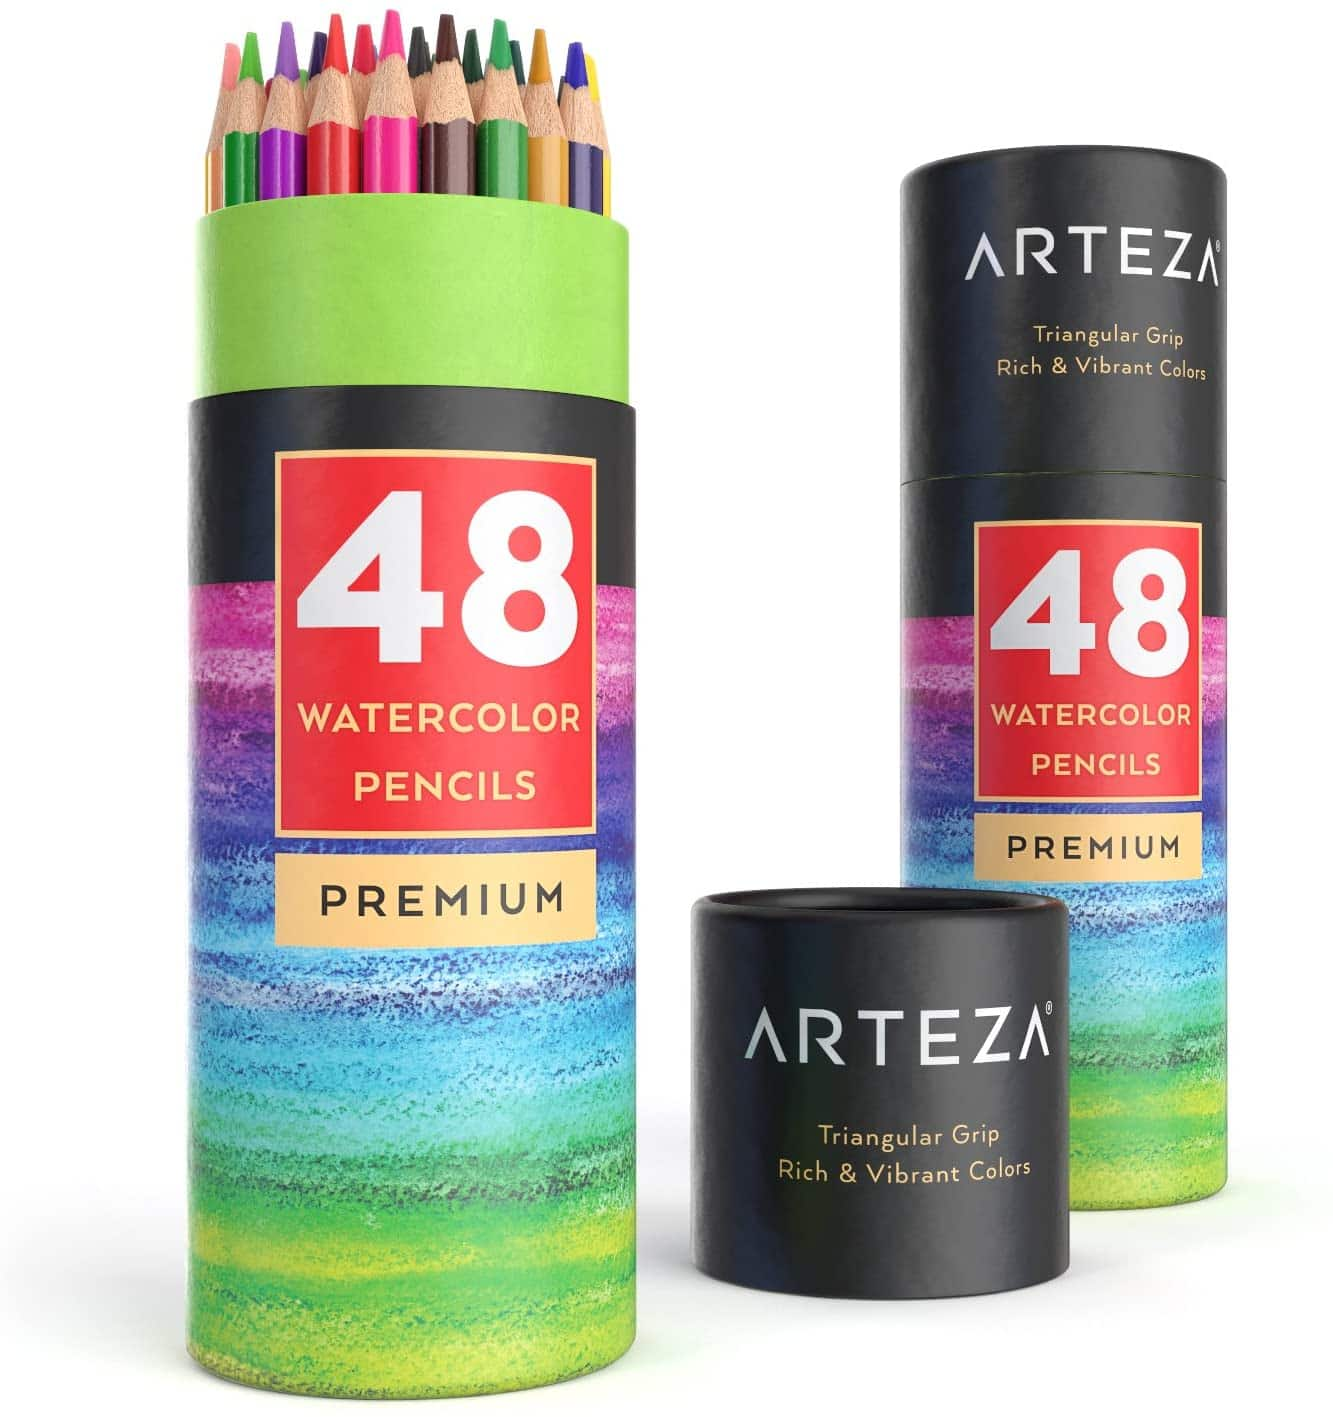 Arteza Watercolor Pencils Set of 48, Presharpened, Triangular-Shaped Colored Pencils for Adults and Teens $10.87 at Amazon